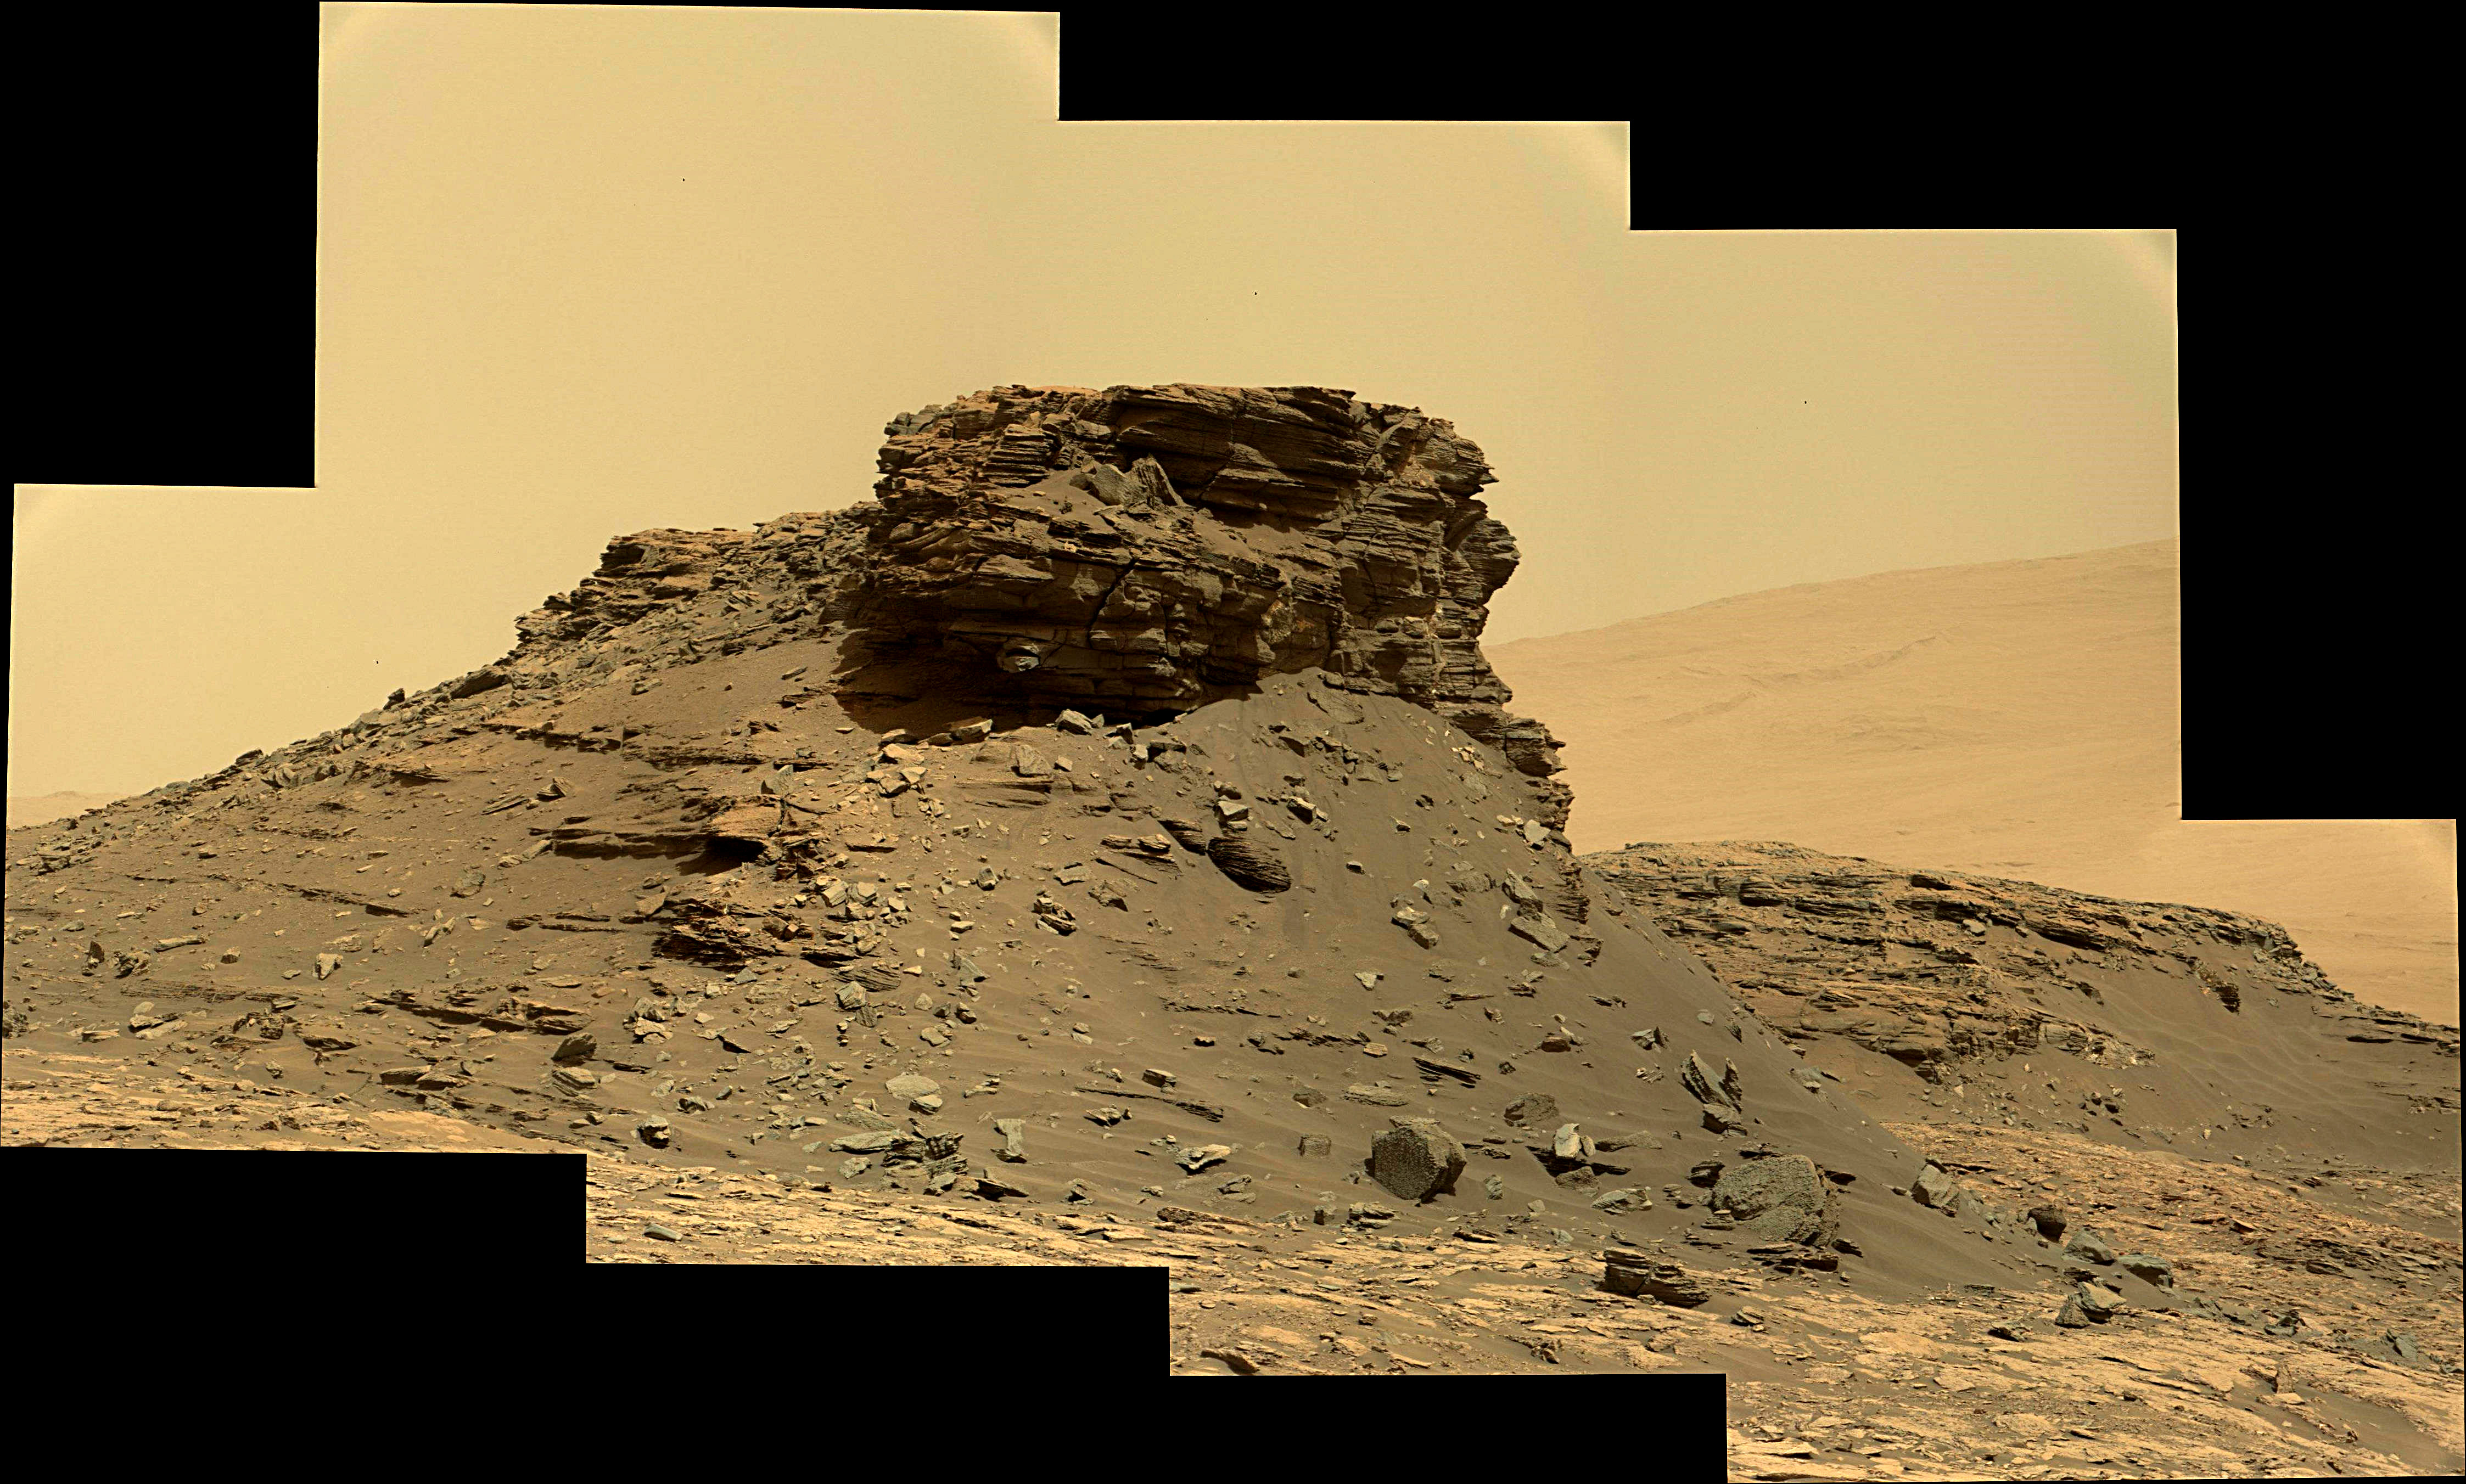 panoramic curiosity rover view 1e - sol 1436 - was life on mars